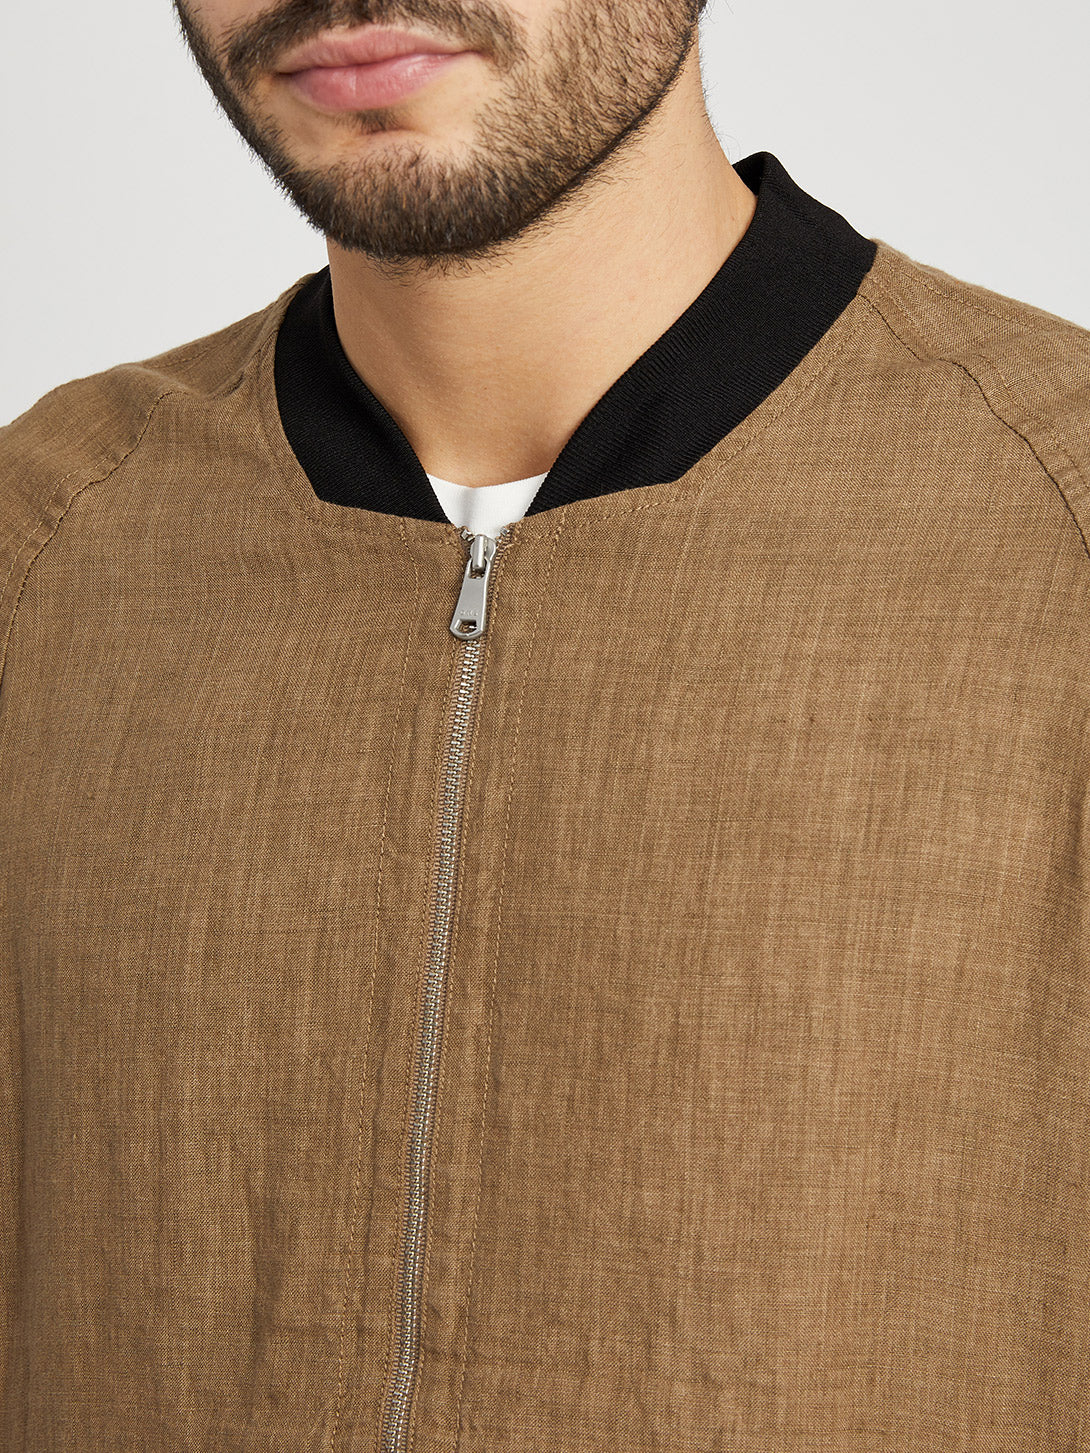 LIGHT BROWN jackets for men lora bomber ons clothing